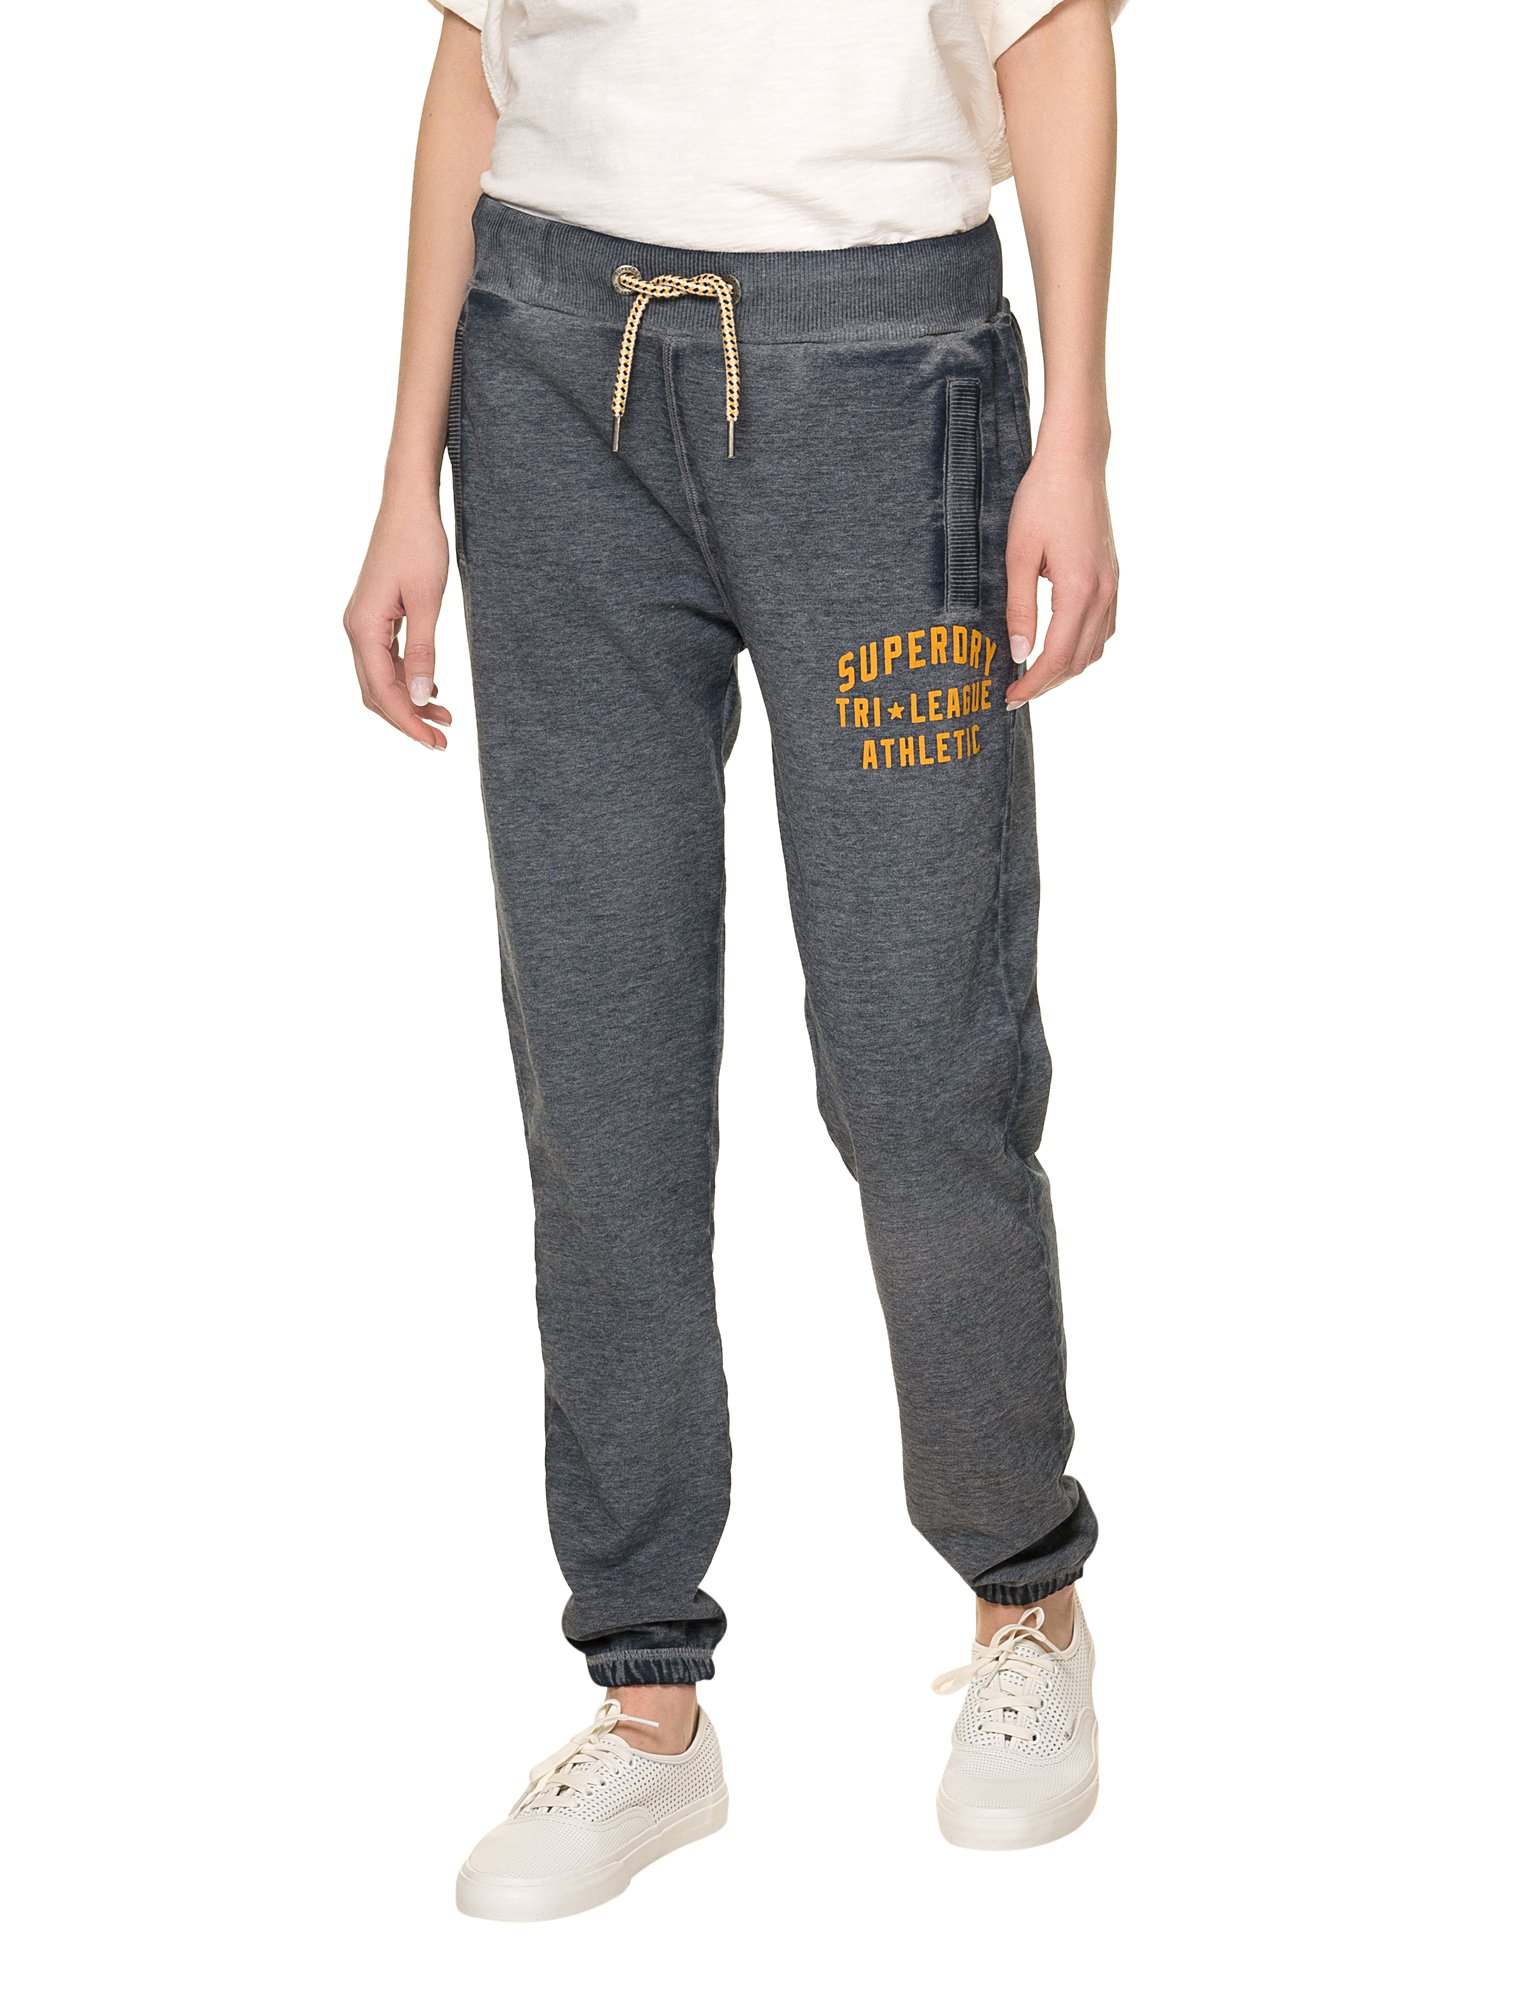 Superdry Women's Tri League Relaxed Joggers Women's Trackpants in Size S Navy